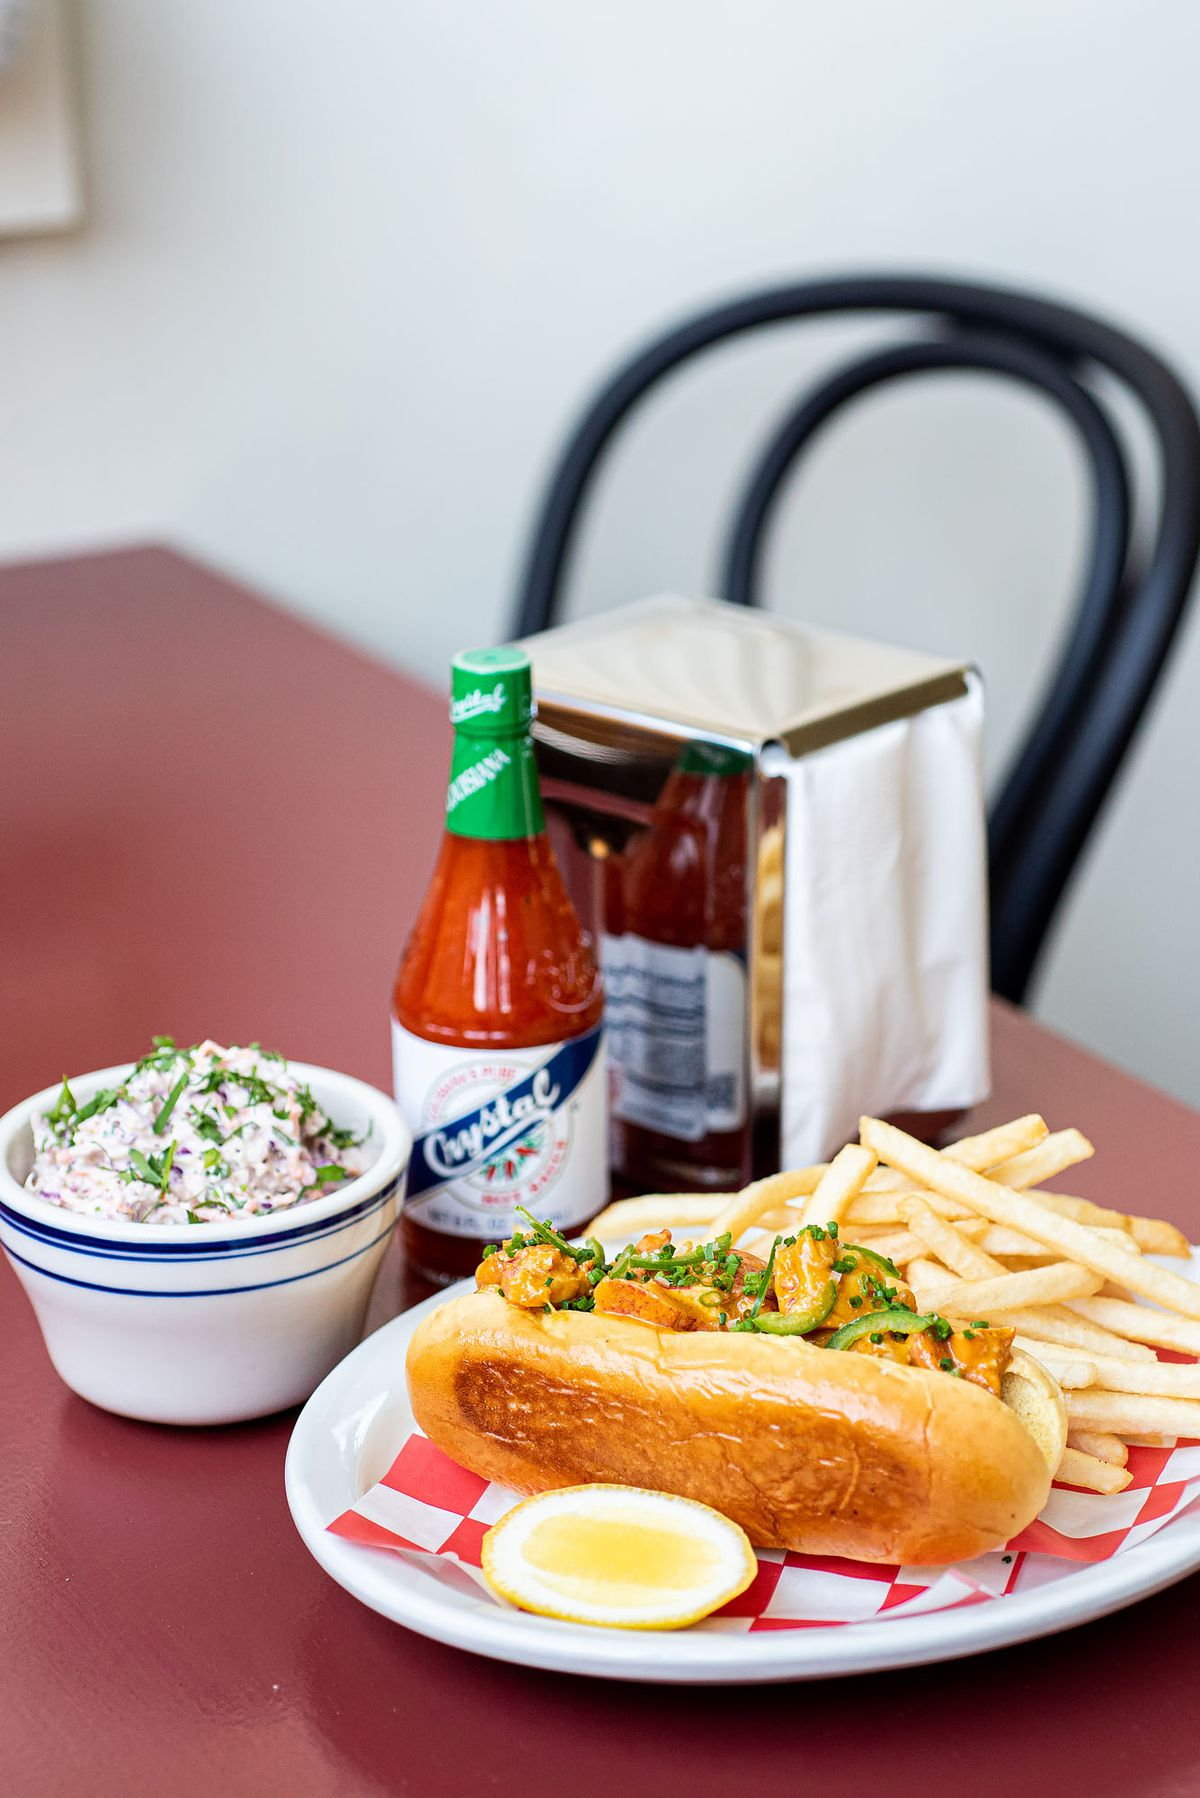 Lobster roll and fries on a plate with hot sauce in background.